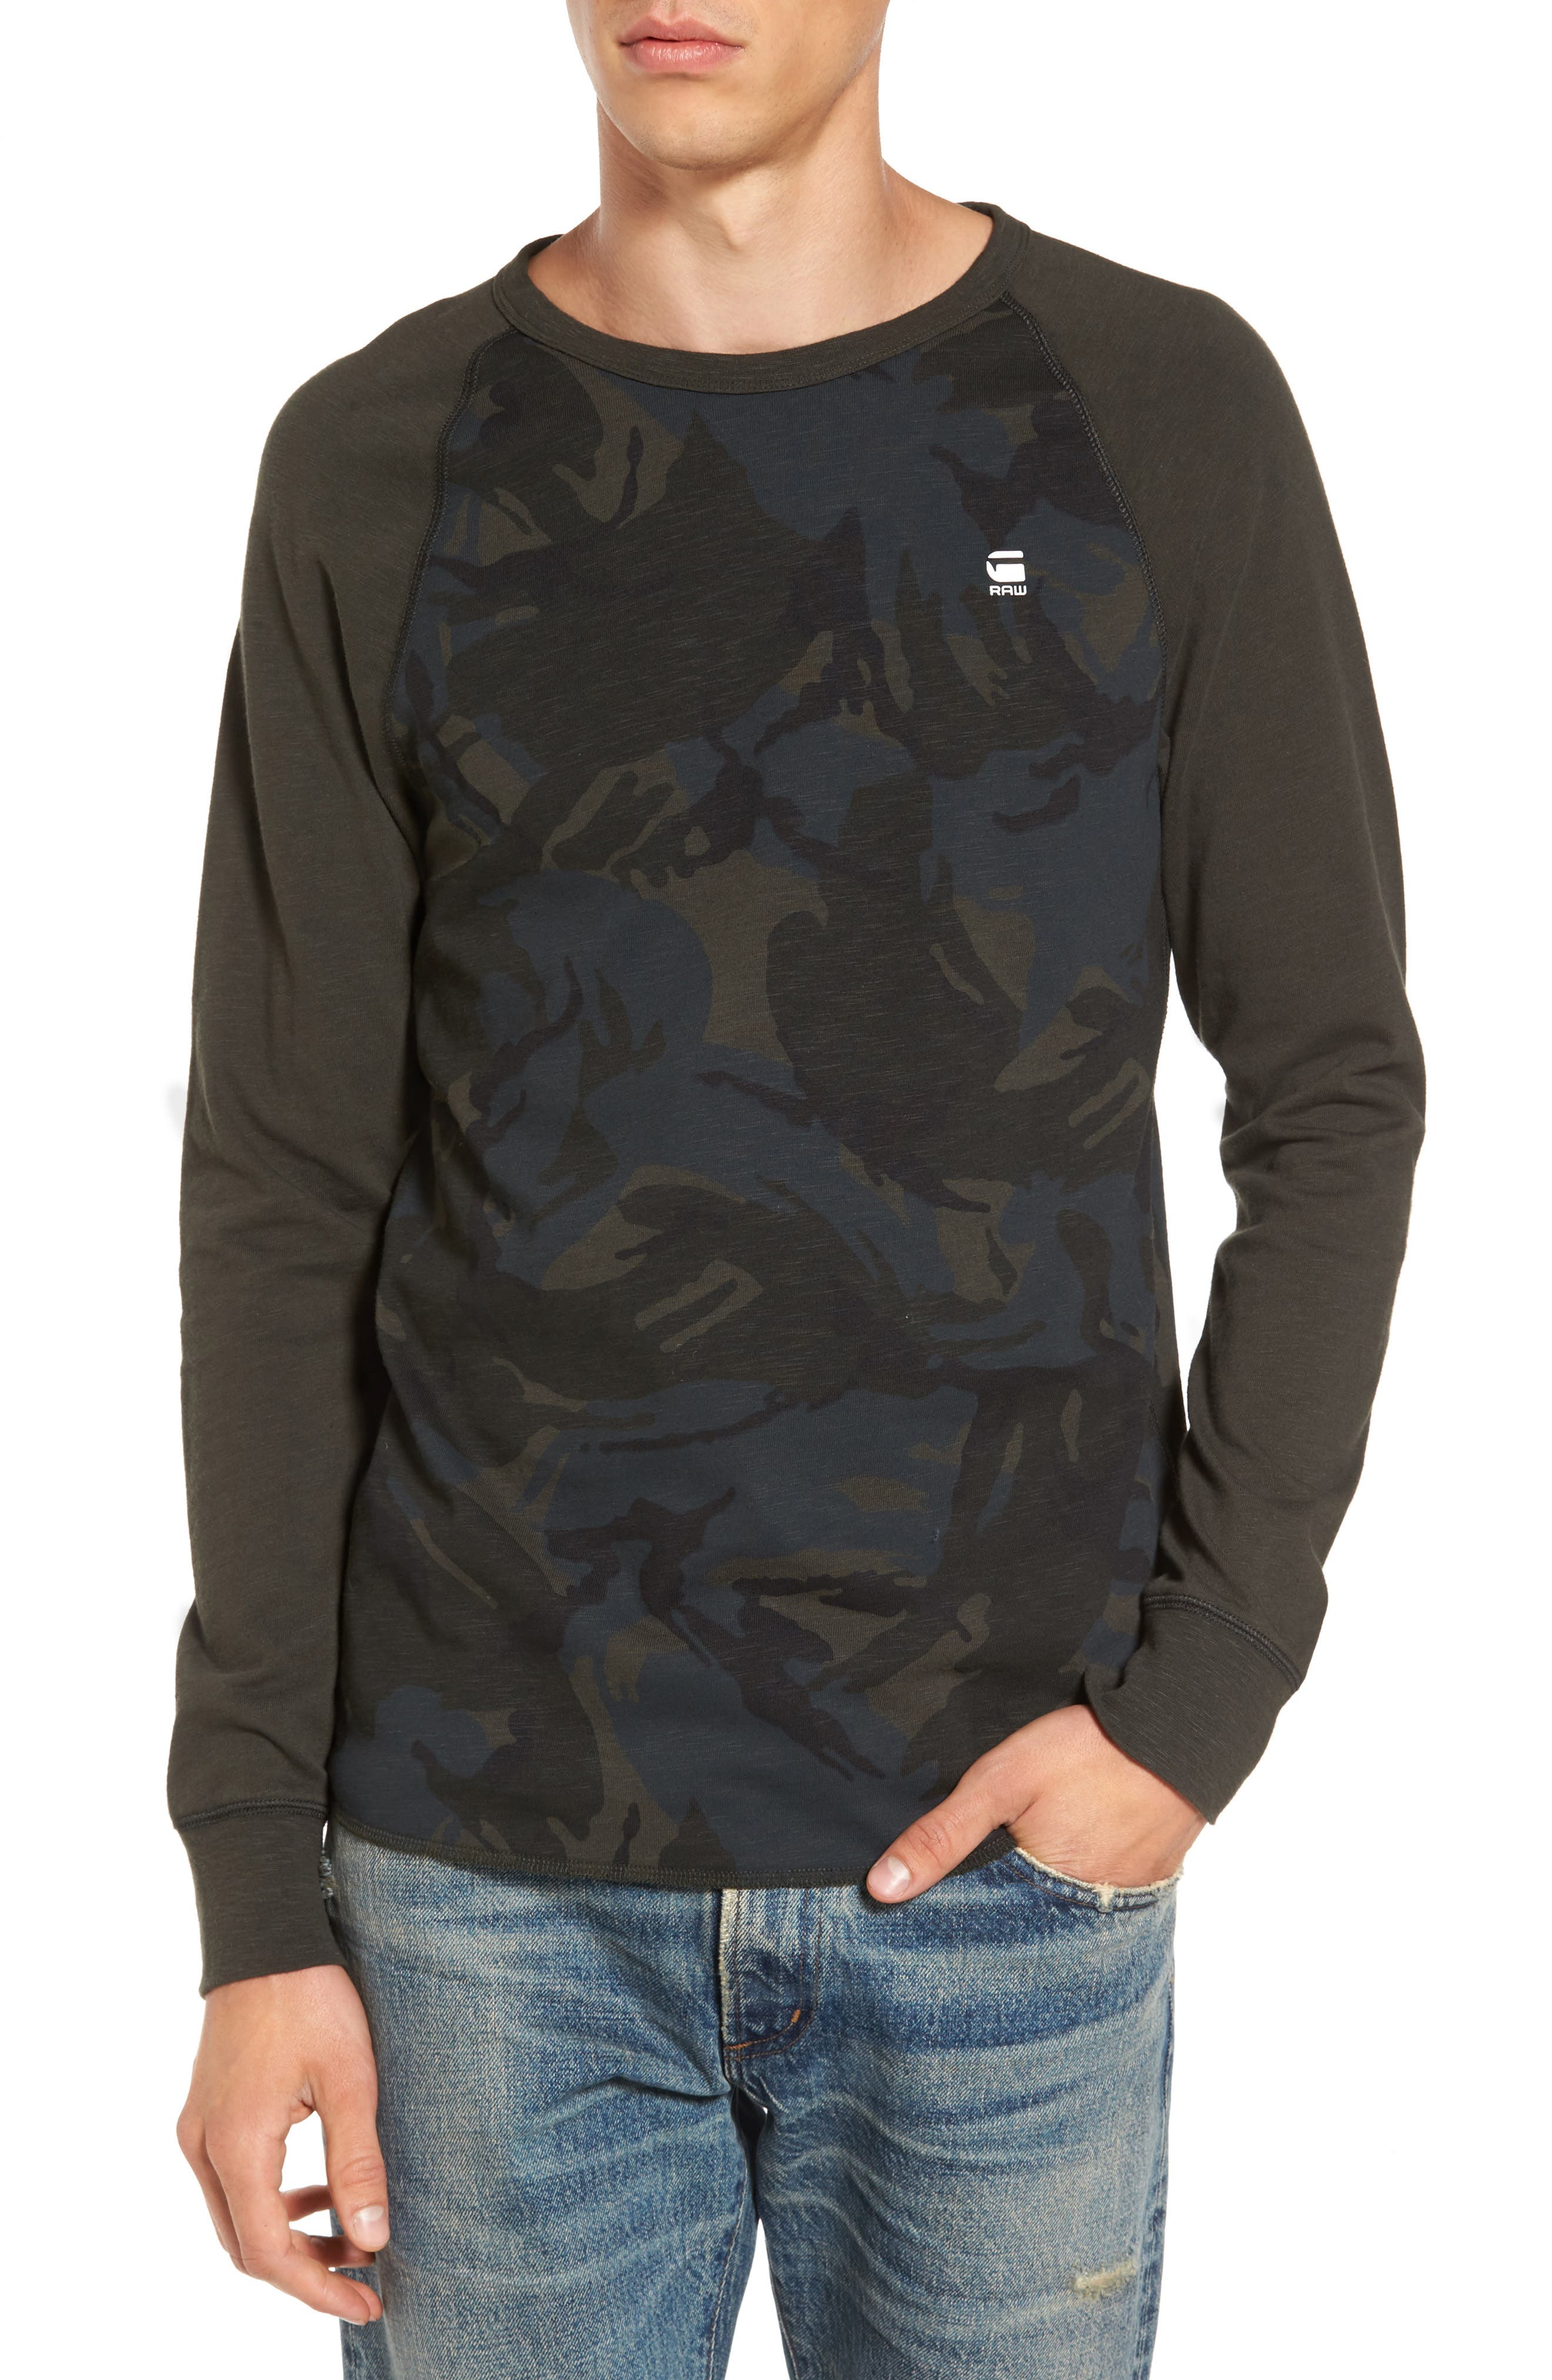 G-Star Raw Jirgi Camo T-Shirt